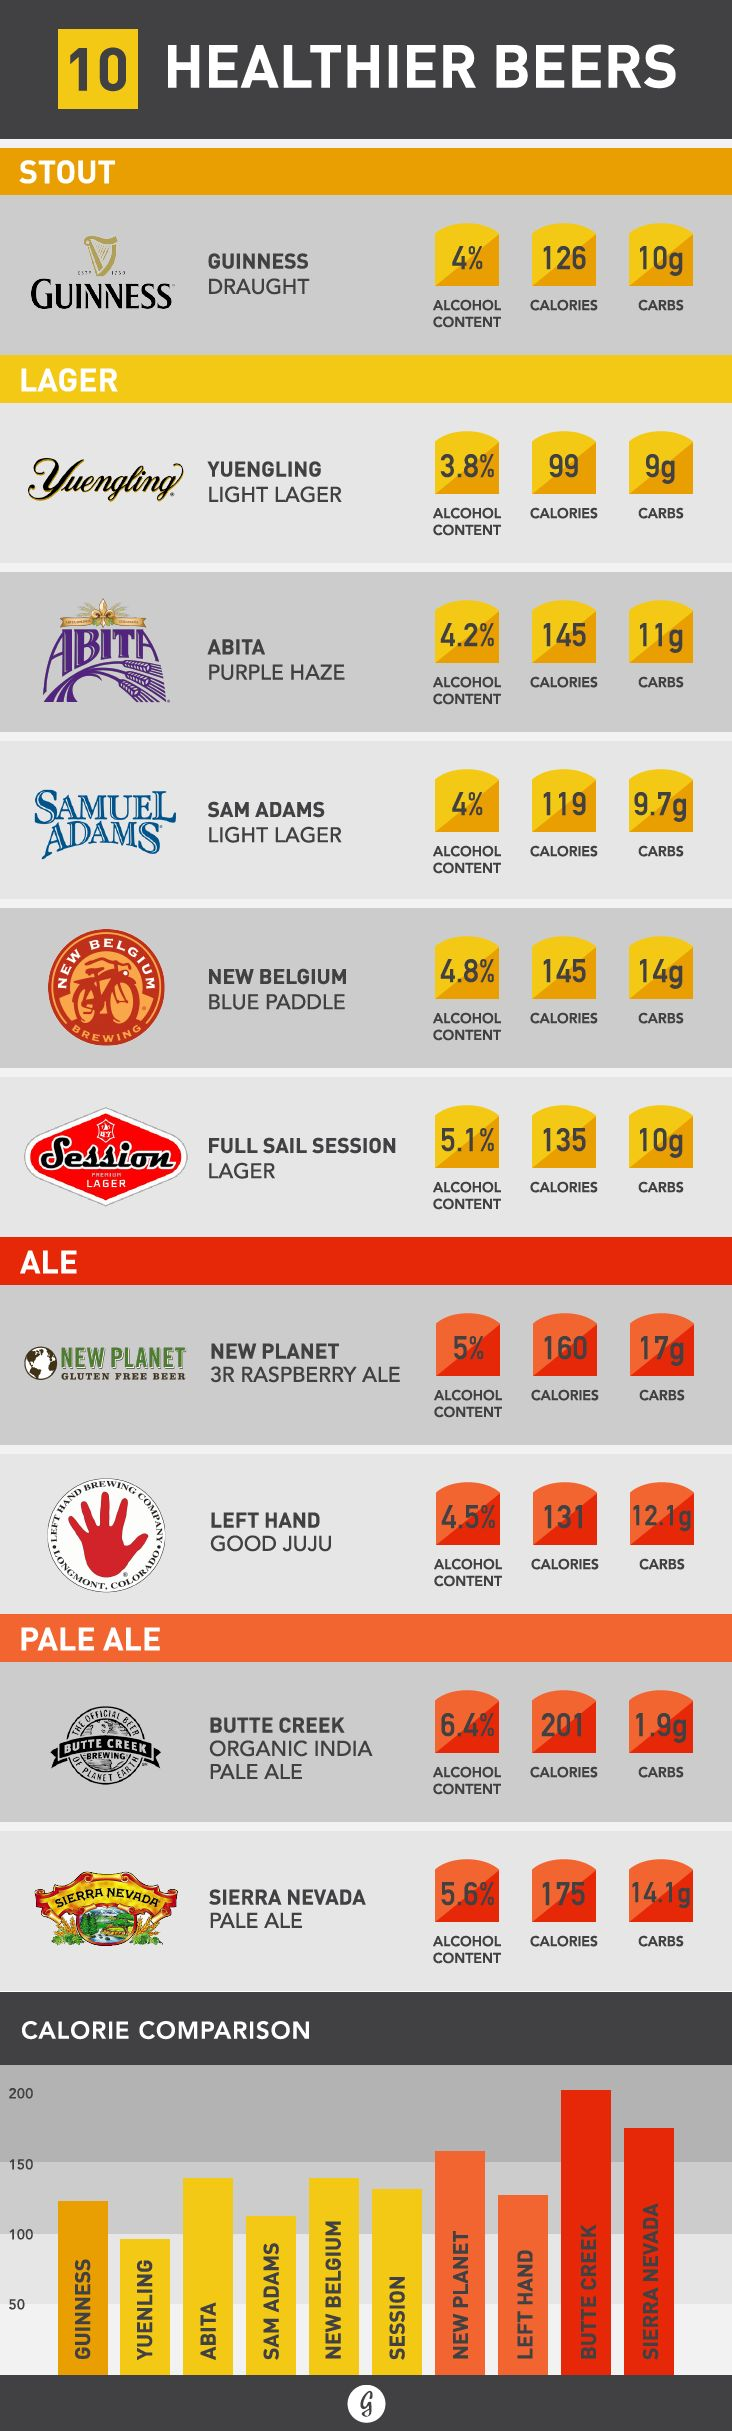 Kicking back with a cold one? Use this chart to make the best choice for your calorie budget.